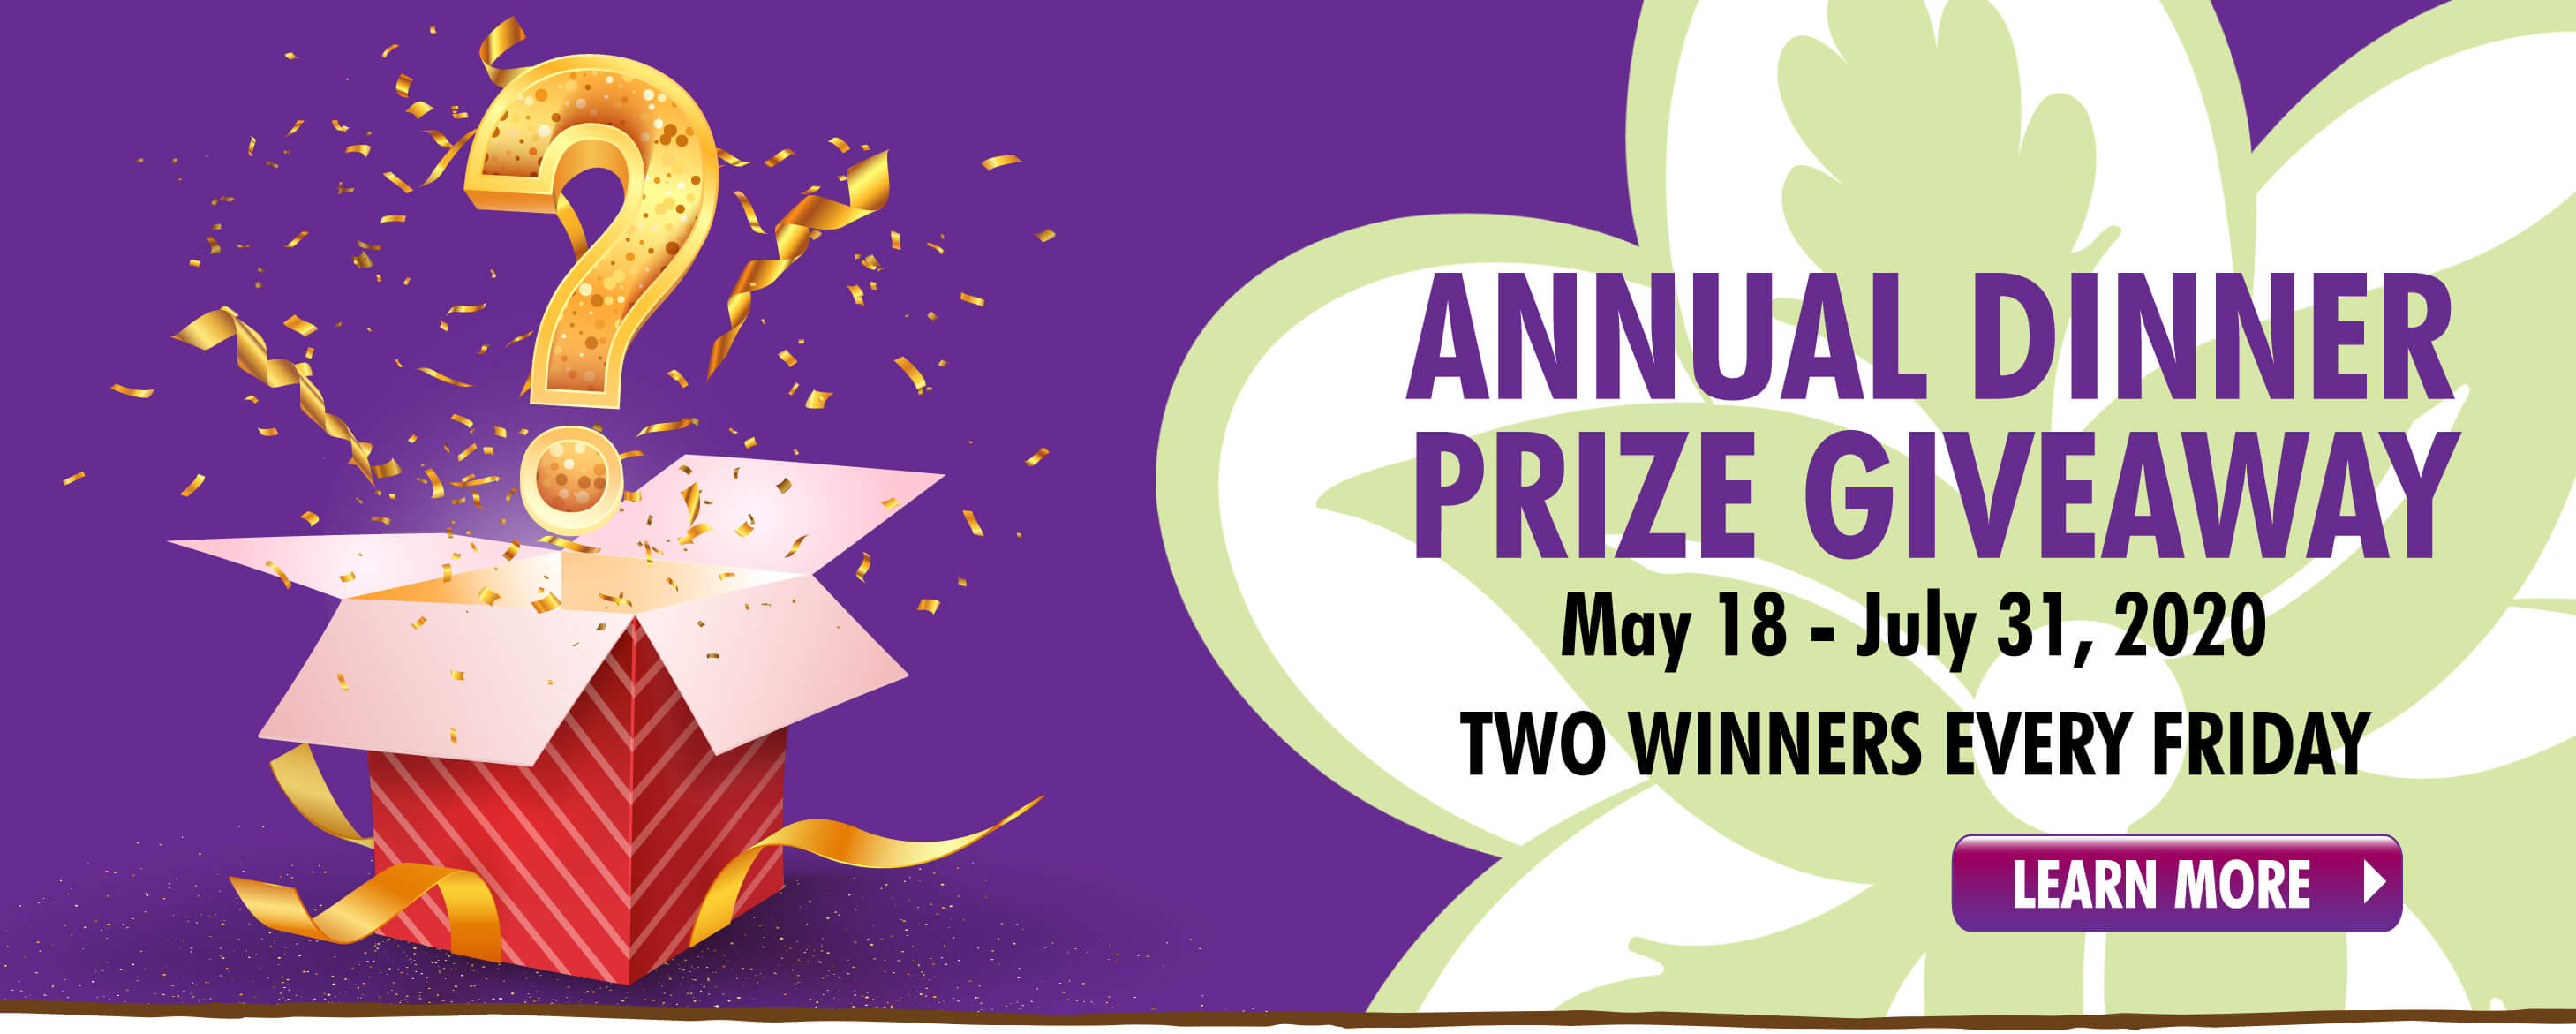 Enter to Win Annual Dinner Prize Giveaway.  Two Winners every Friday!